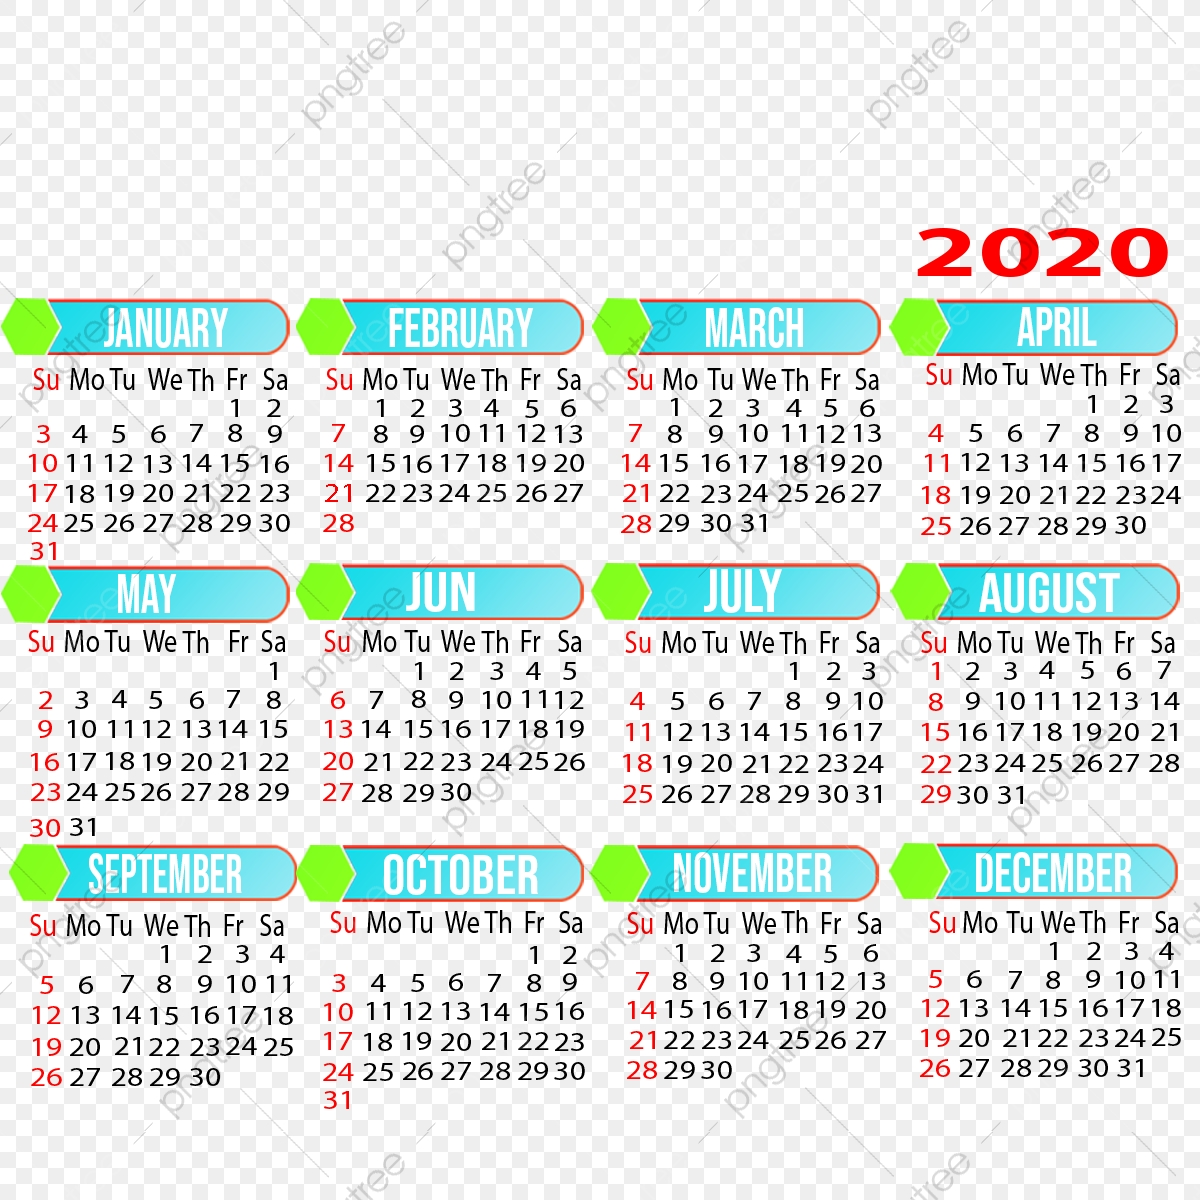 2021 Yearly Calendar Design, 2021, Calendar, 2021 Calendar PNG